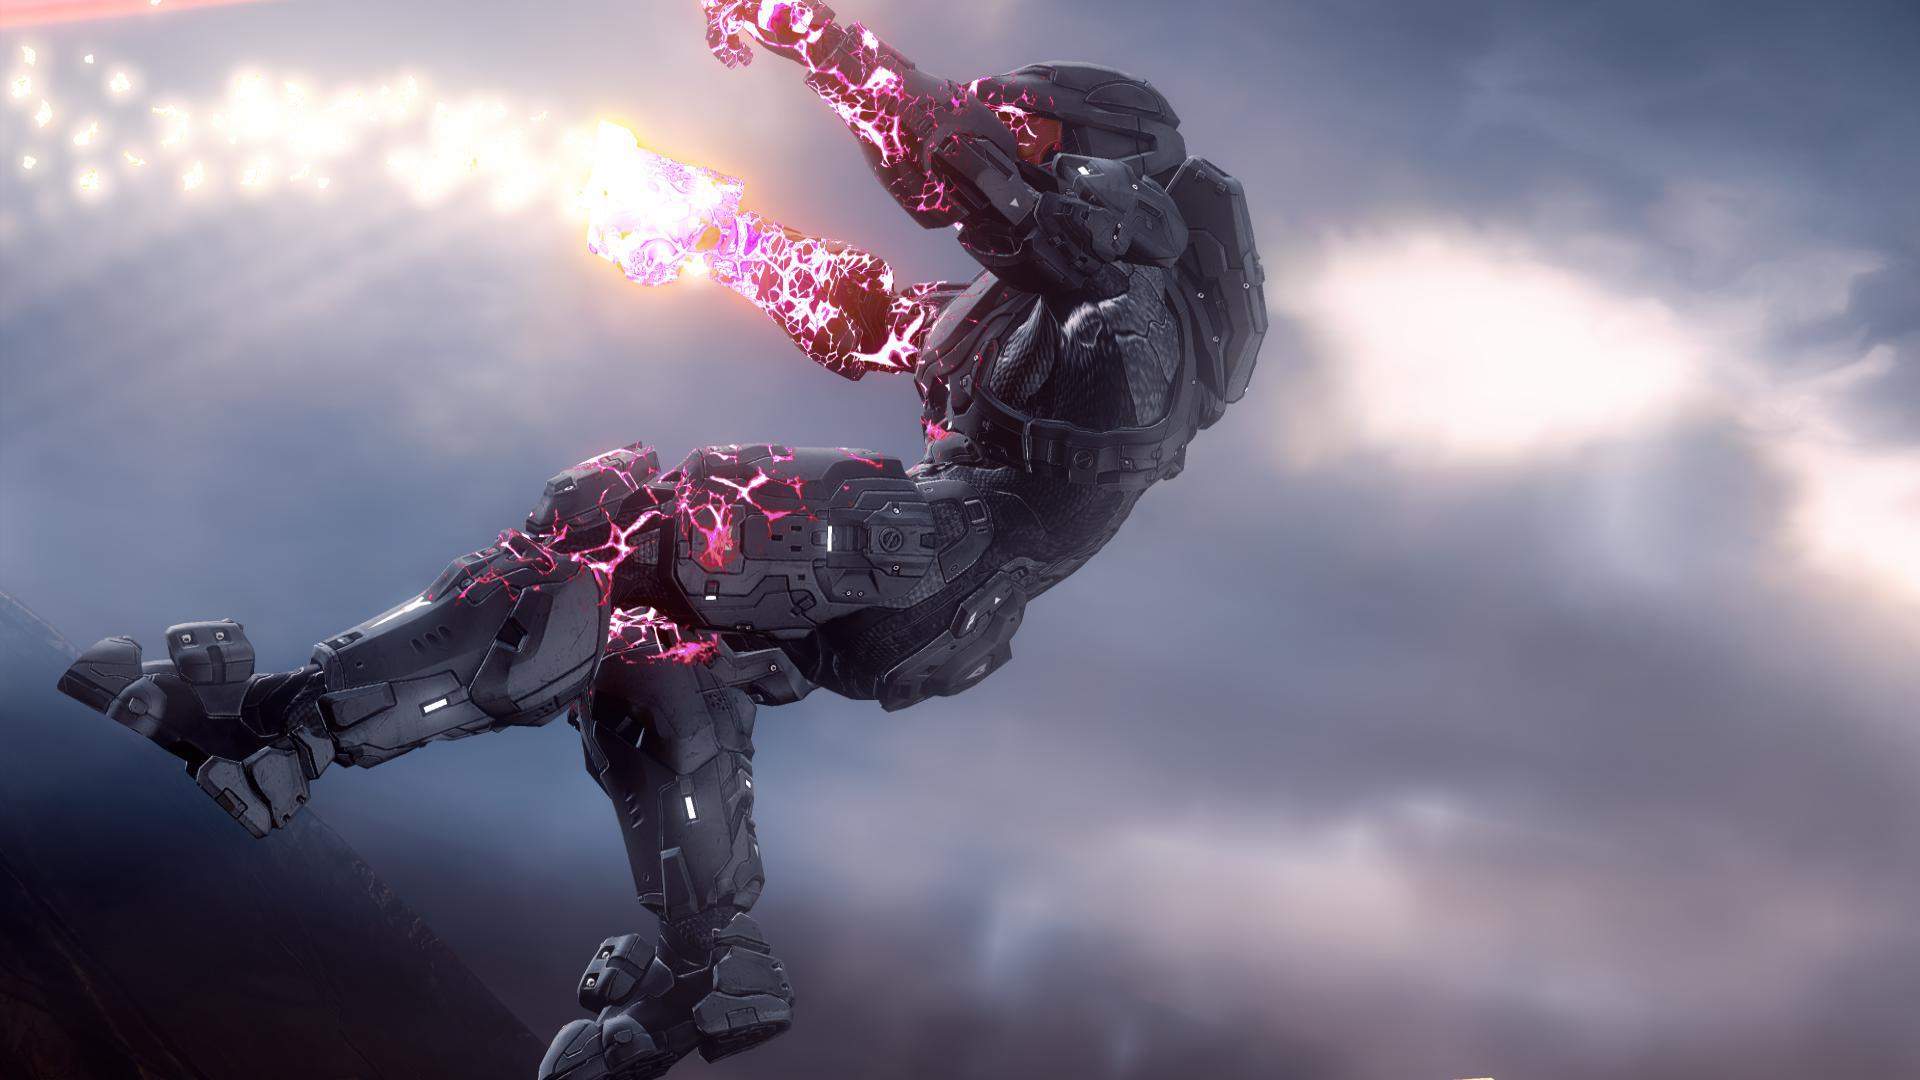 Awesome Halo HD Wallpaper Download 1920x1080